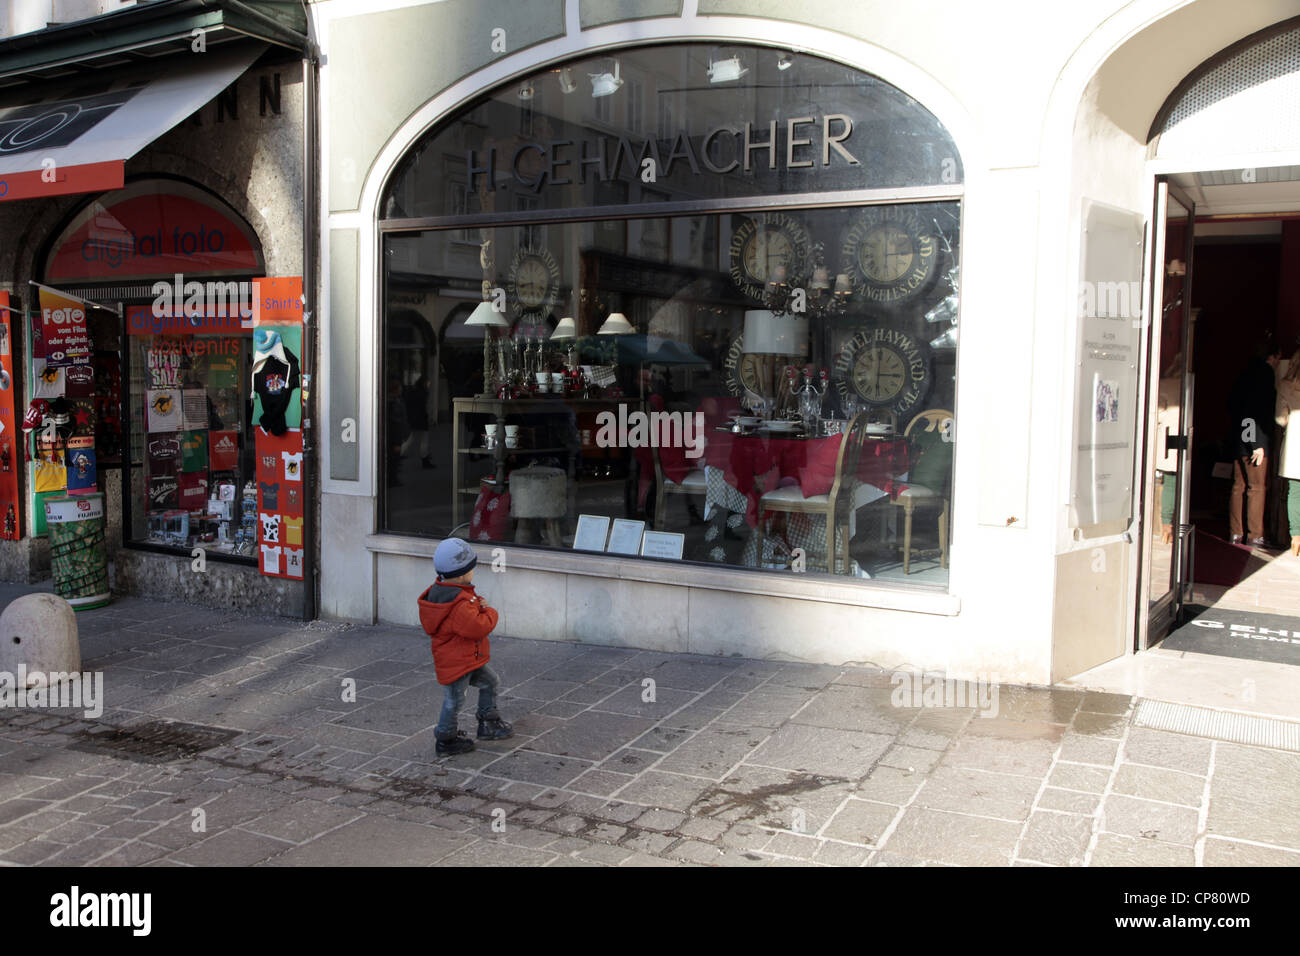 CHILD OUTSIDE H. GEHMACHER SHOP SALZBURG AUSTRIA 27 December 2011 - Stock Image